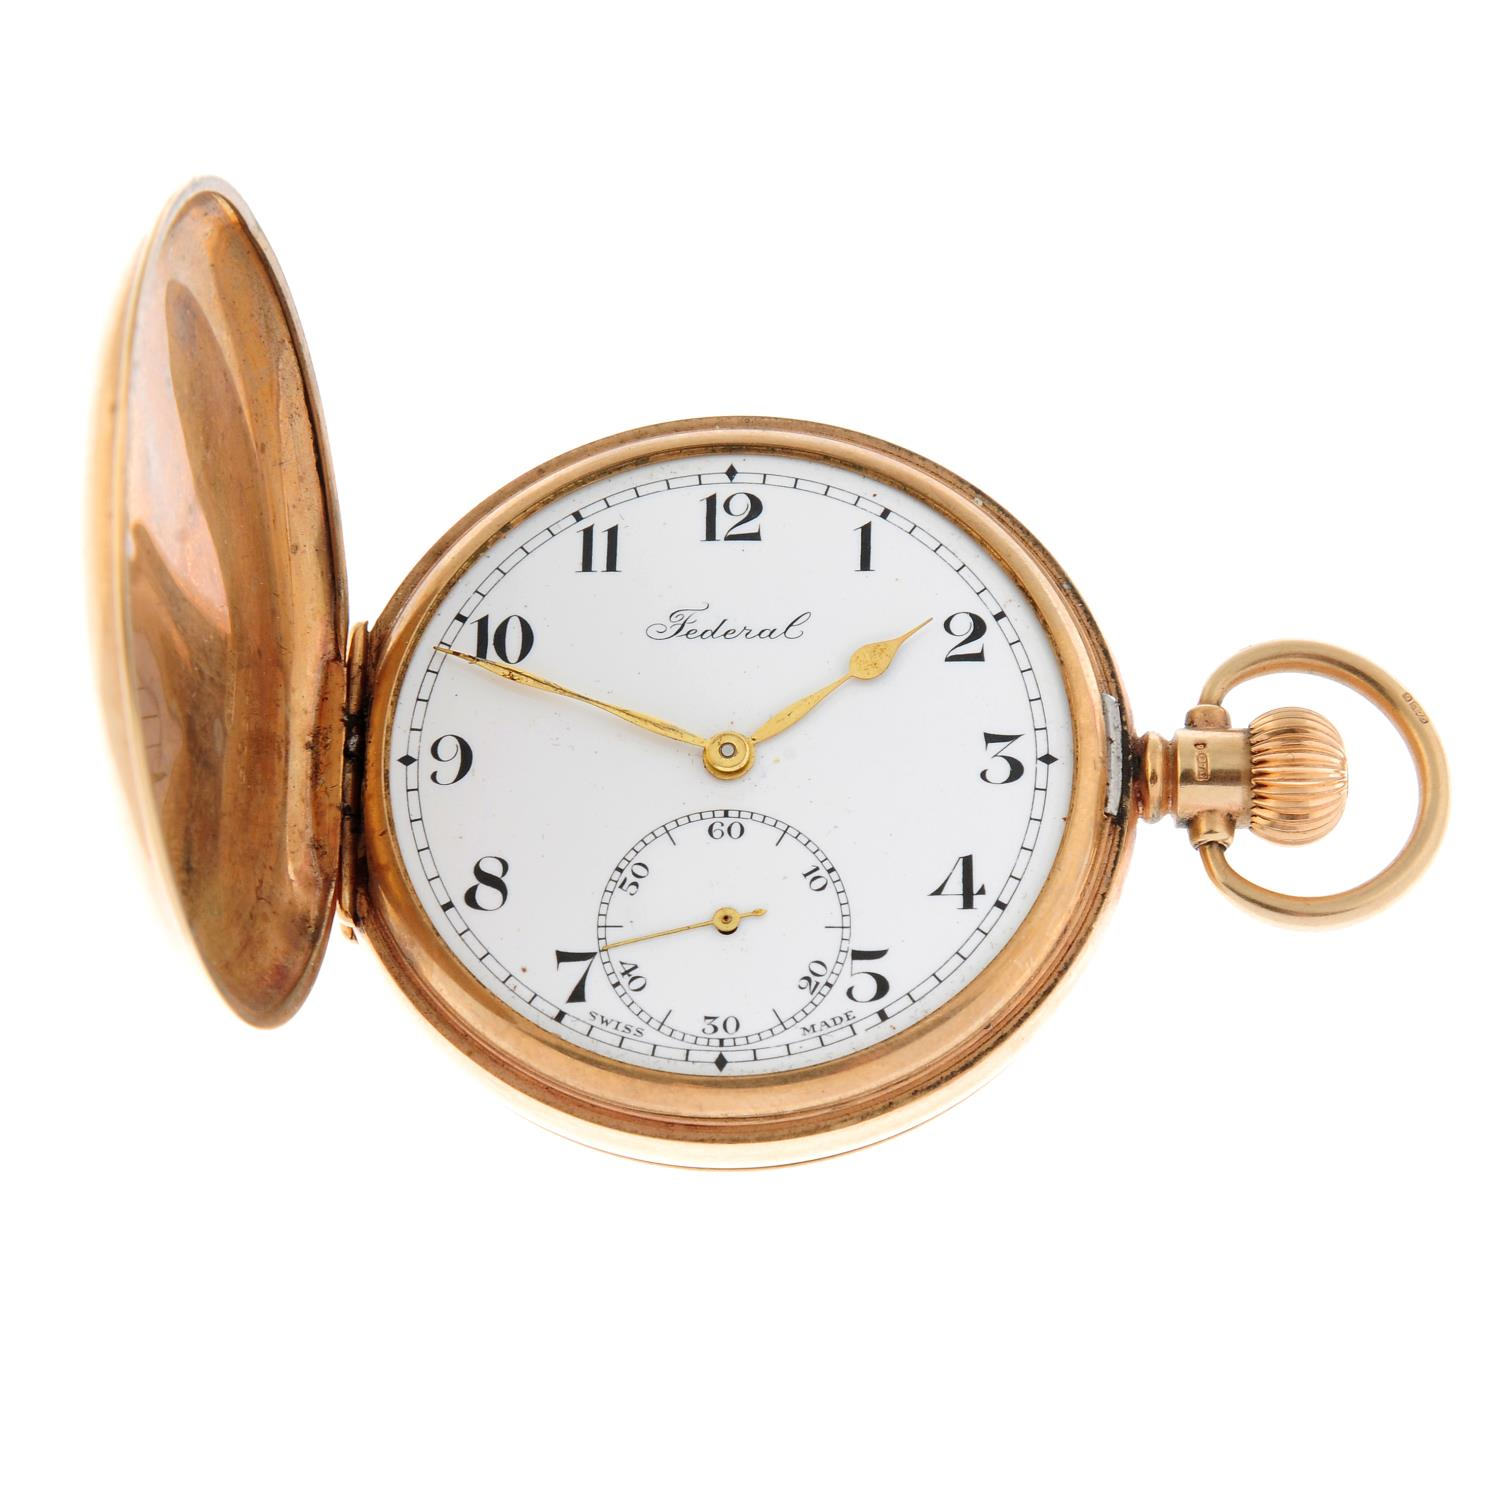 A full hunter pocket watch by Federal.